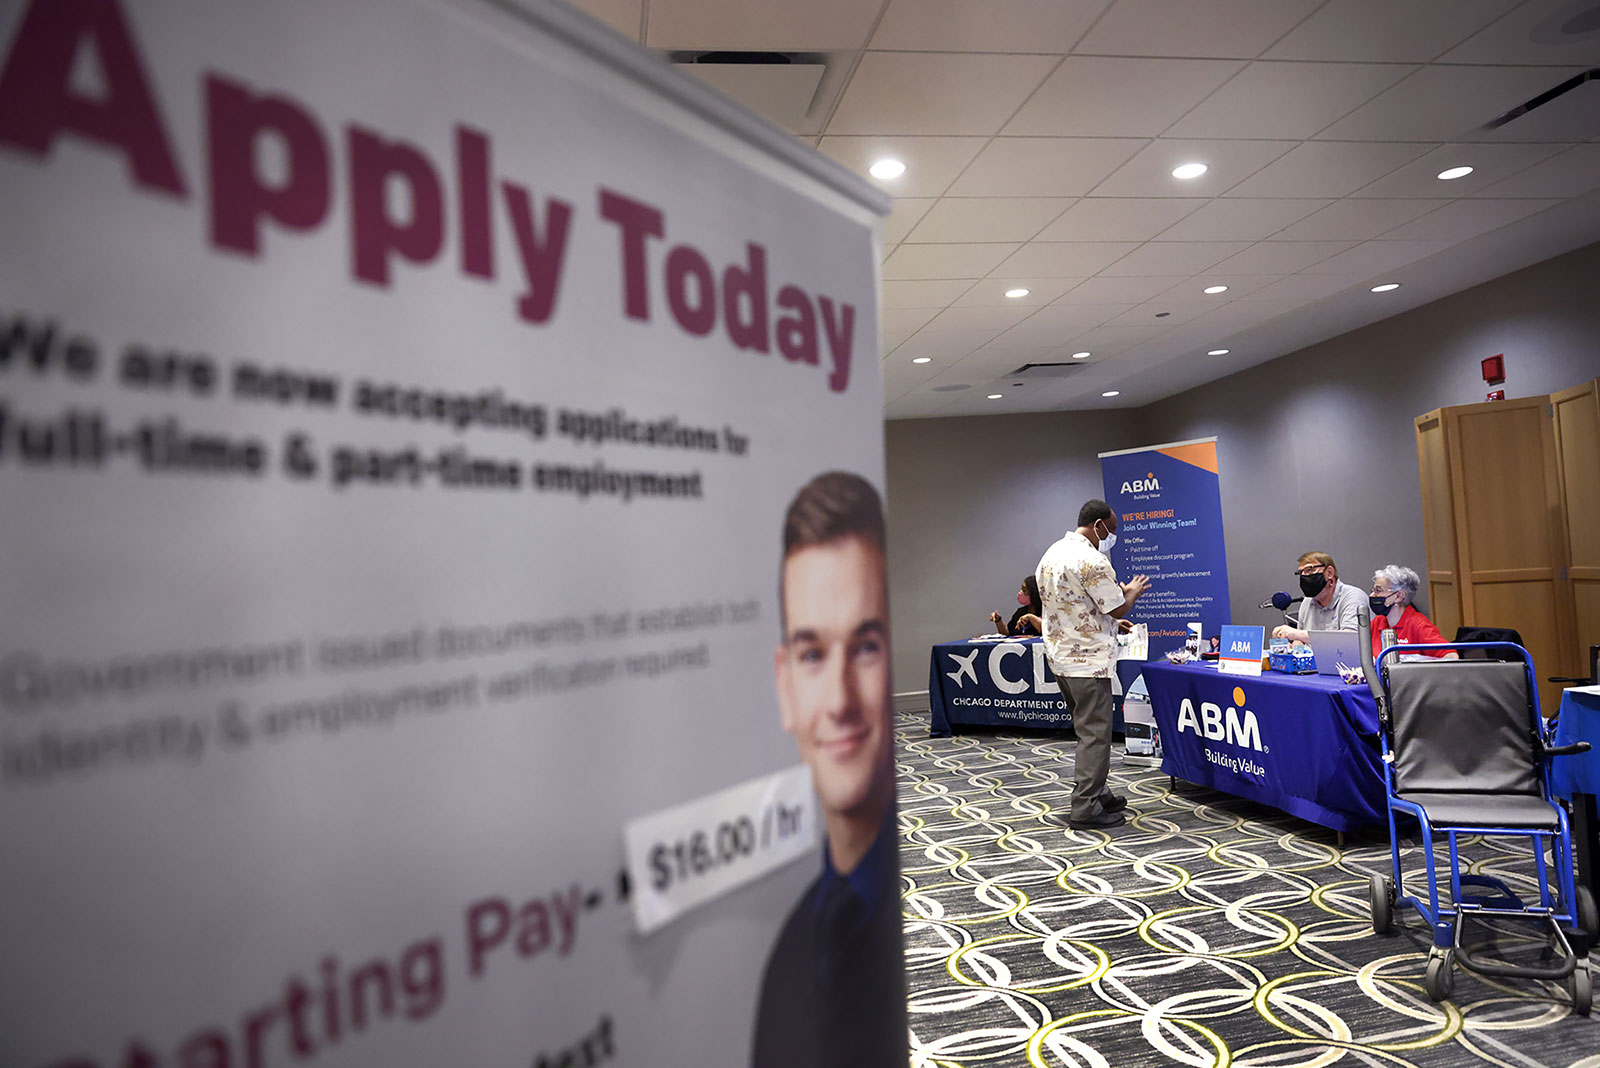 Recruiters meet with candidates at a job fair at O'Hare International Airport in Chicago on May 19.